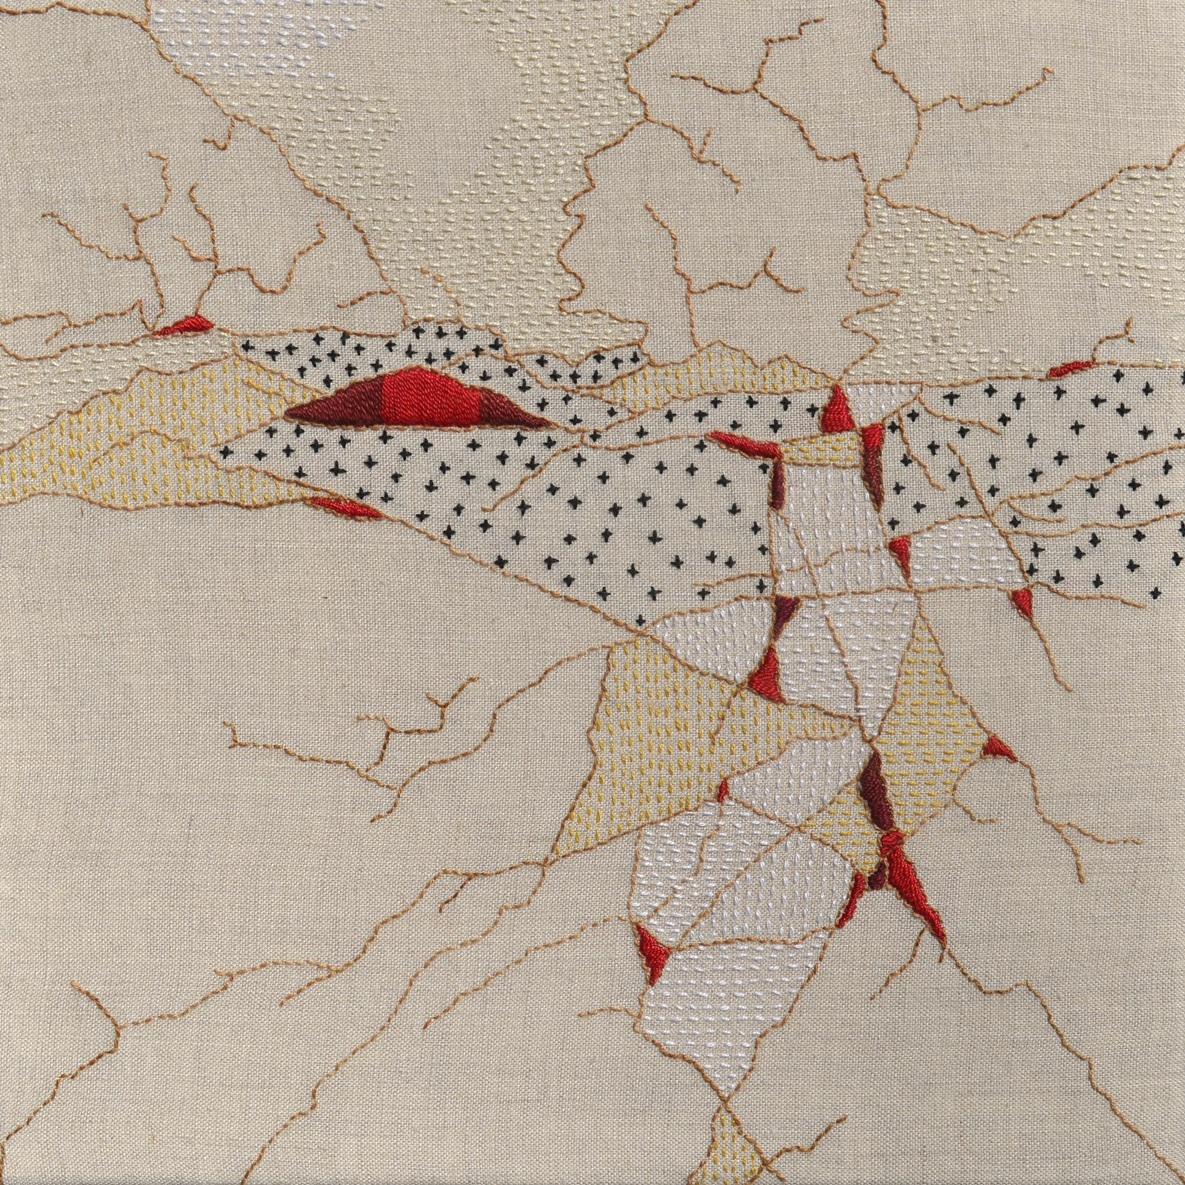 The Red Hill, 2014, pearl cotton on linen, 14 x 14 inches, private collection